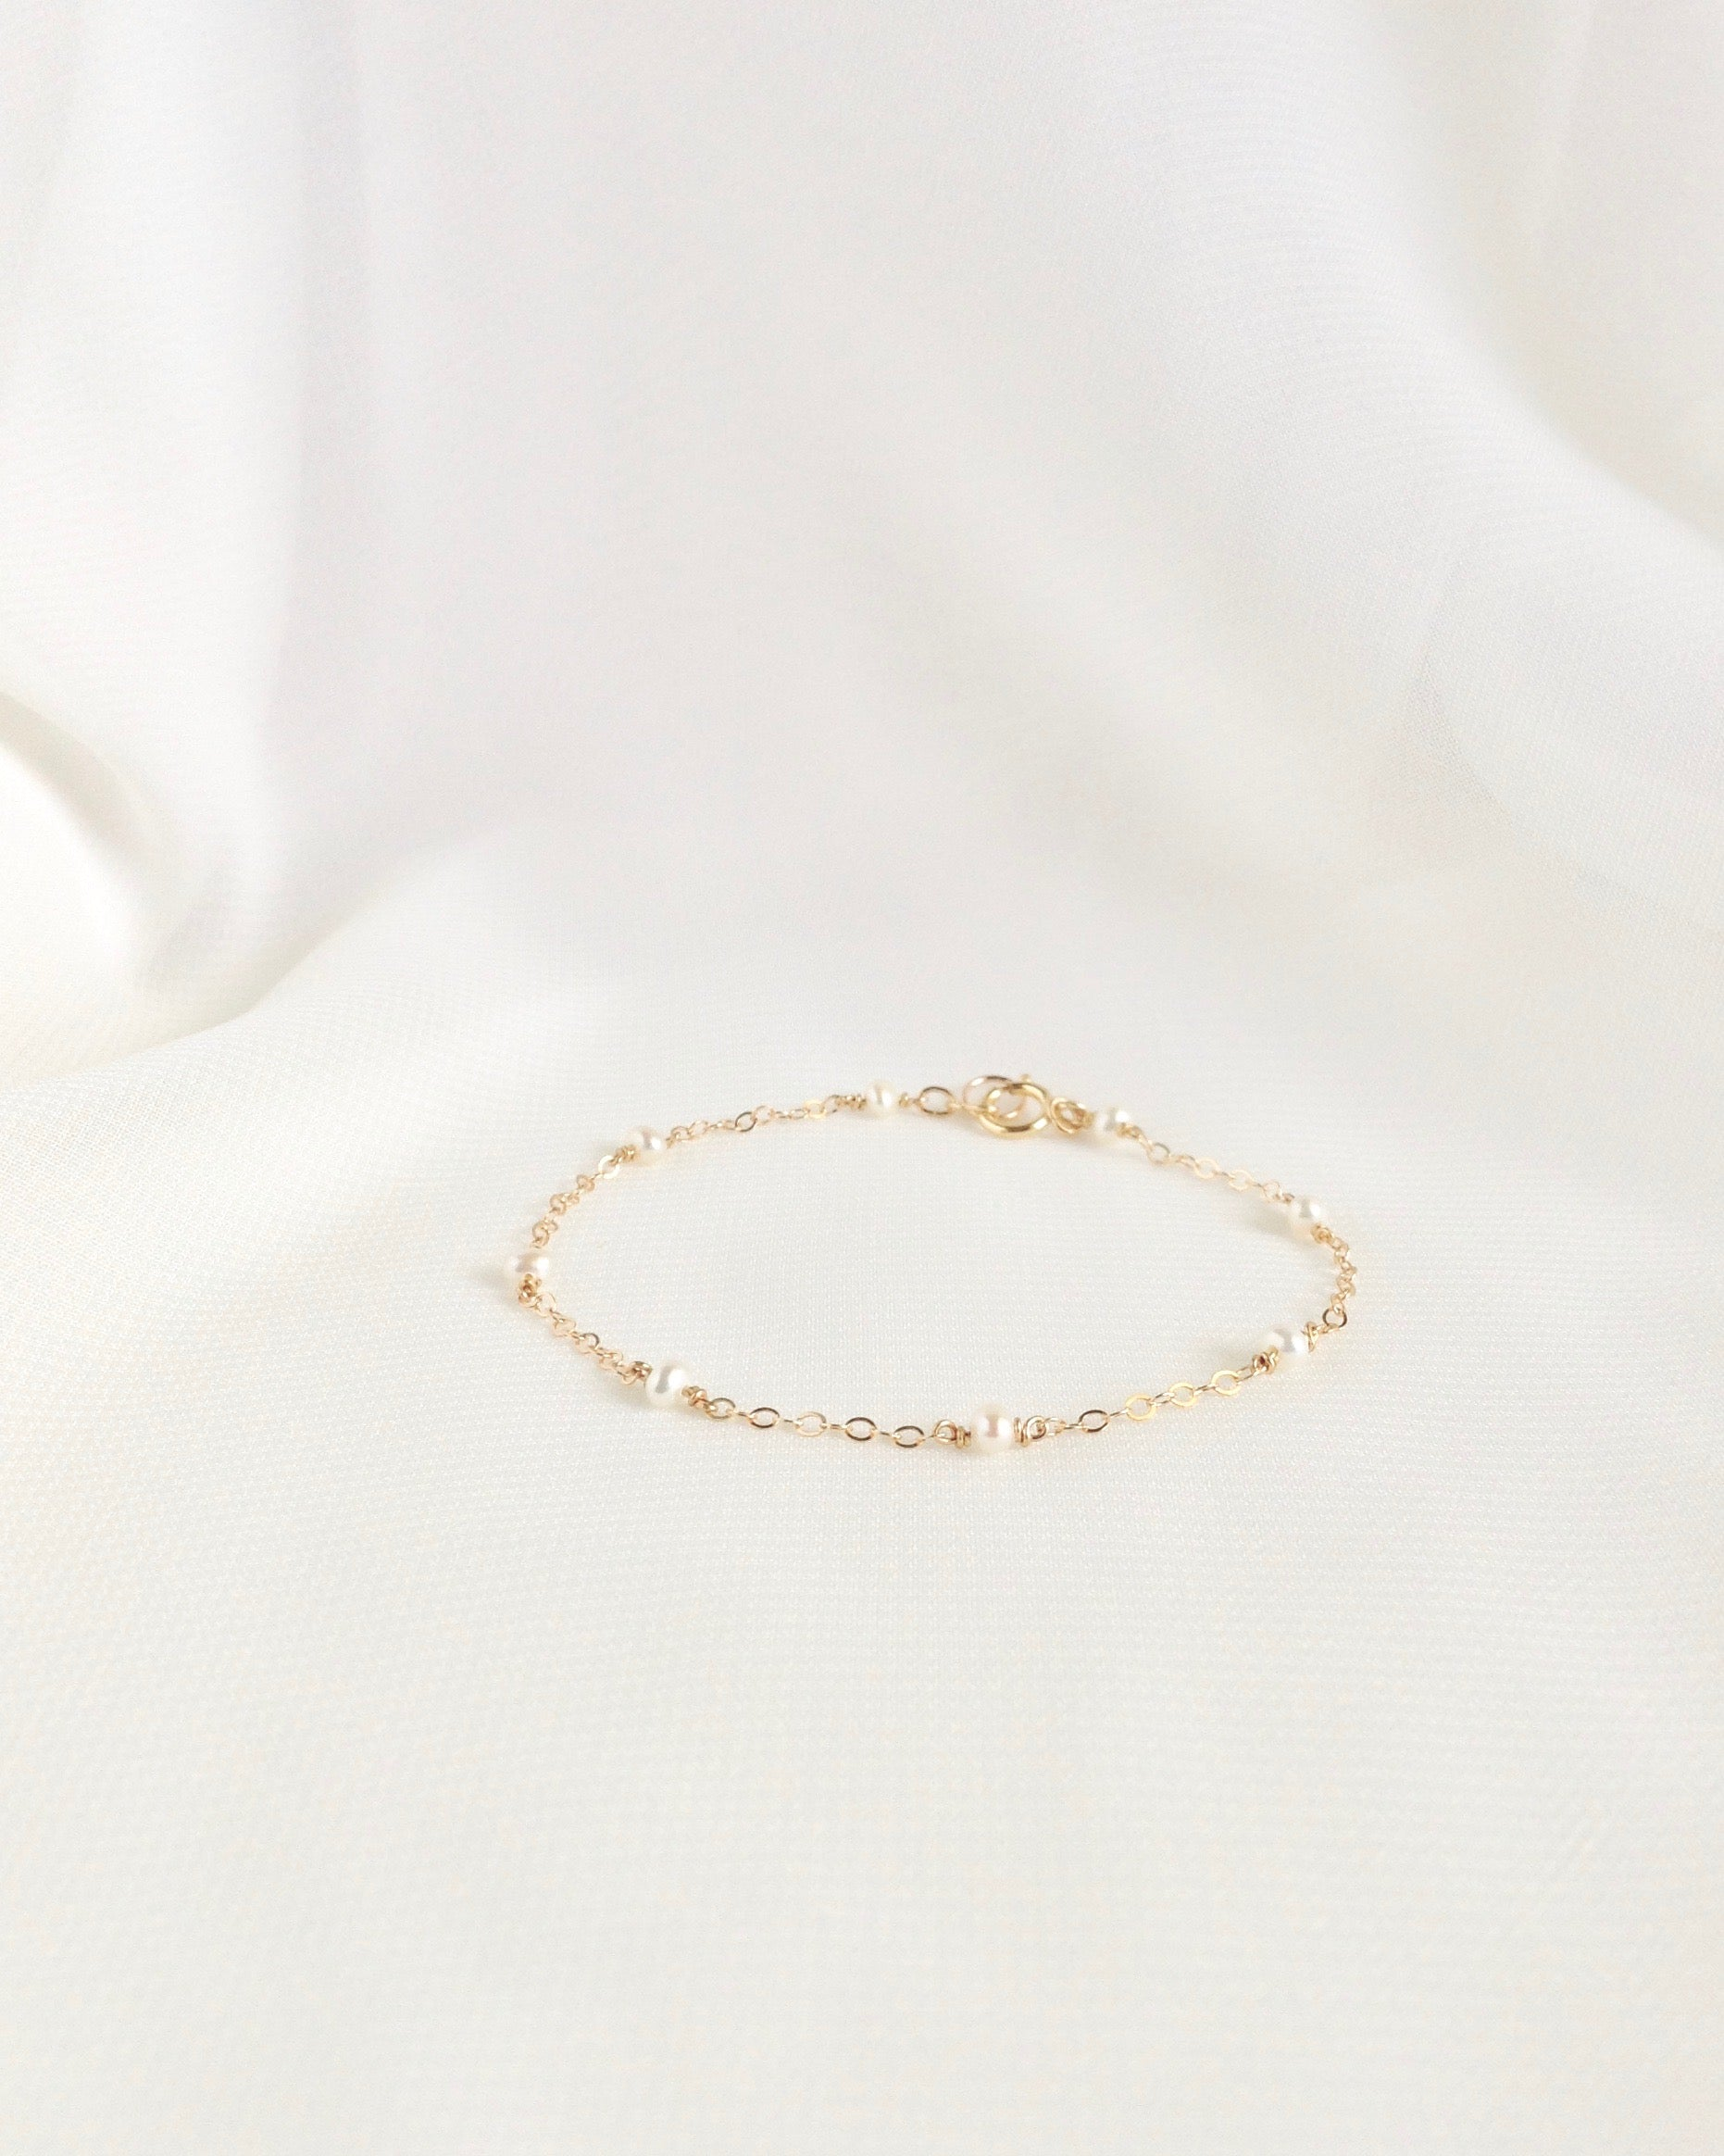 Dainty Pearl Bracelet | Simple Delicate Pearl Bracelet In Gold Filled or Sterling Silver | IB Jewelry